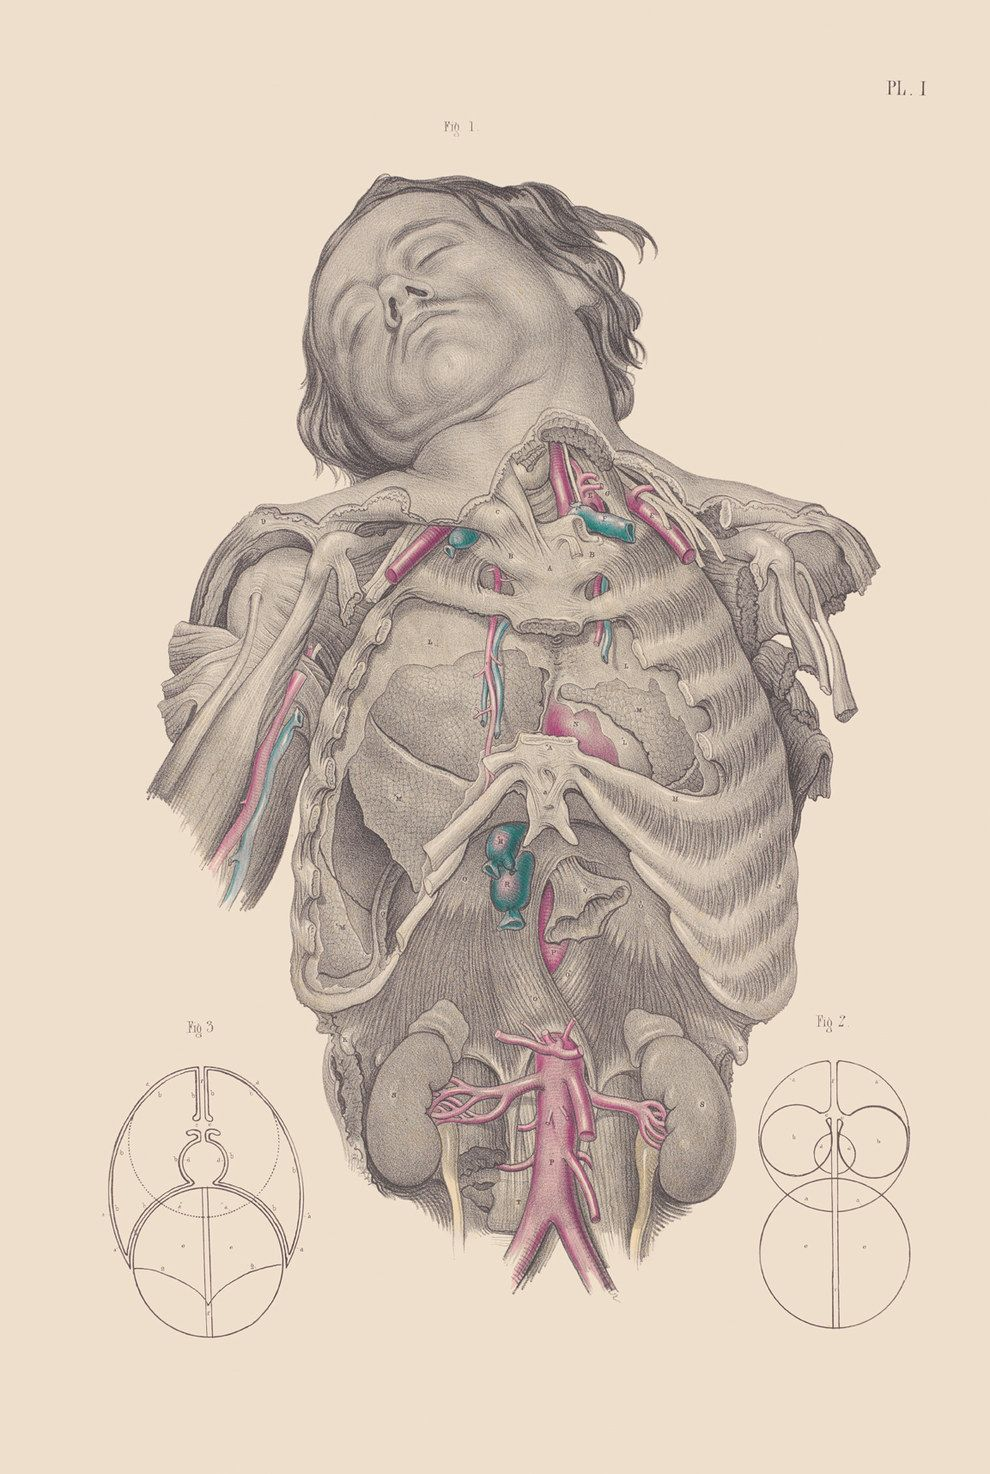 Morbidly Beautiful Pictures Reveal The Horror Of Surgery In The ...